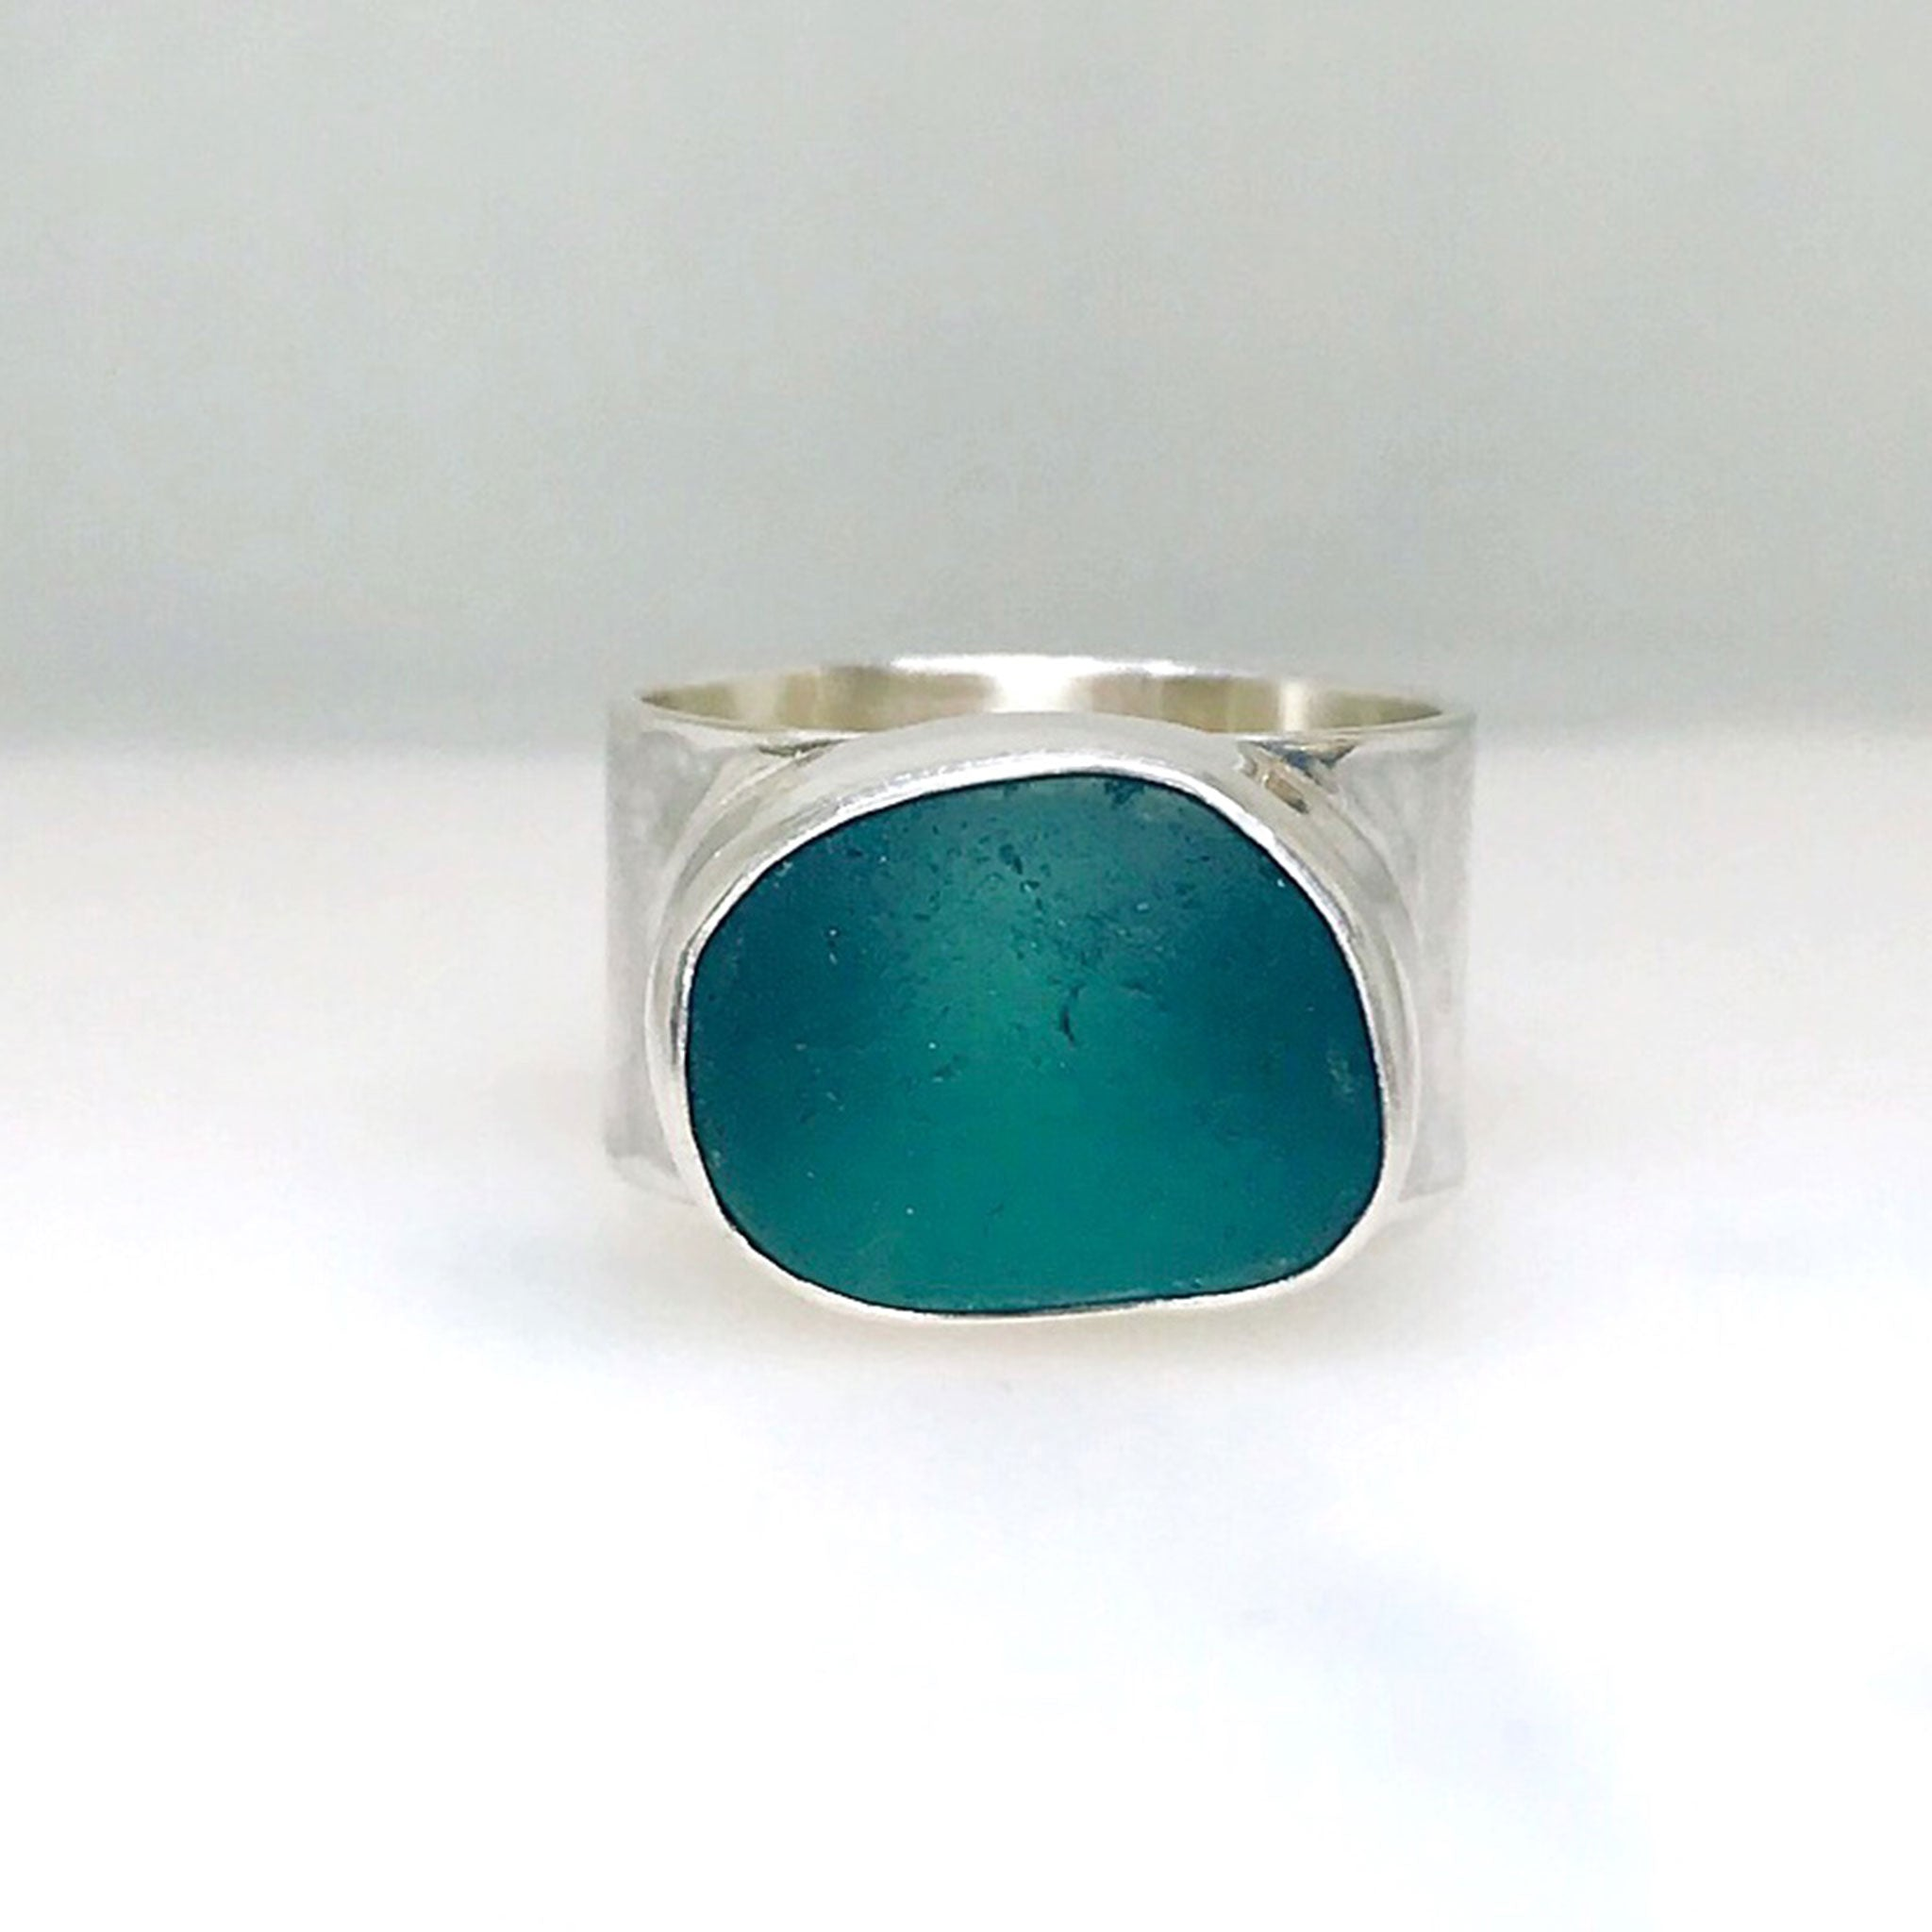 teal blue seaglass ring sterling silver kriket Broadhurst jewellery